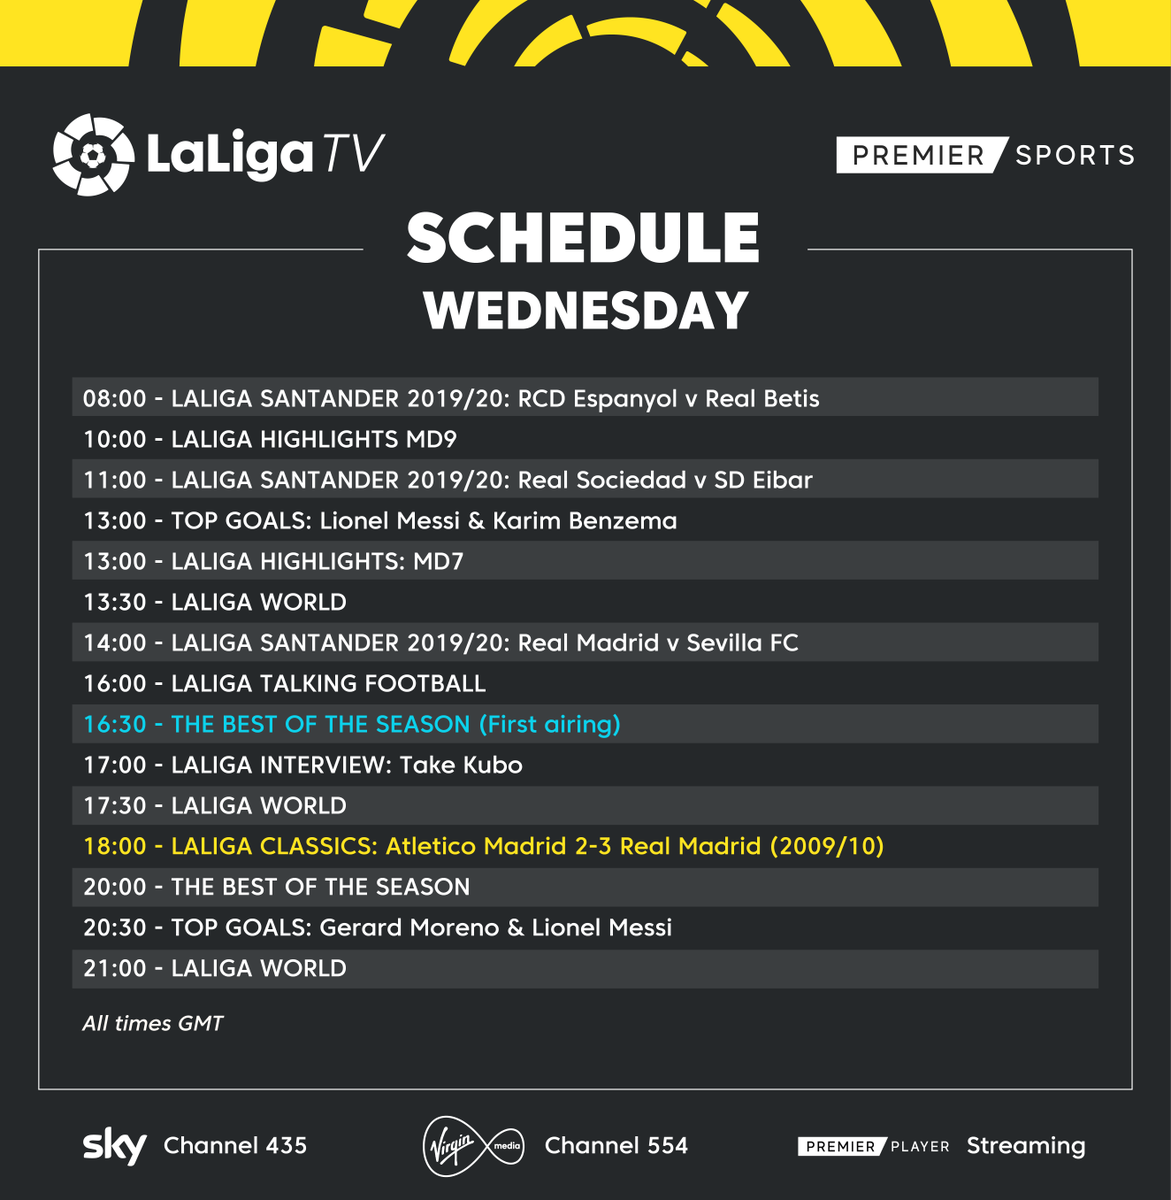 📅 𝗪𝗘𝗗𝗡𝗘𝗦𝗗𝗔𝗬 𝗦𝗖𝗛𝗘𝗗𝗨𝗟𝗘 📺 The best of the season and more #LaLigaClassics today on #LaLigaTV! 🏡 #StayAtHome